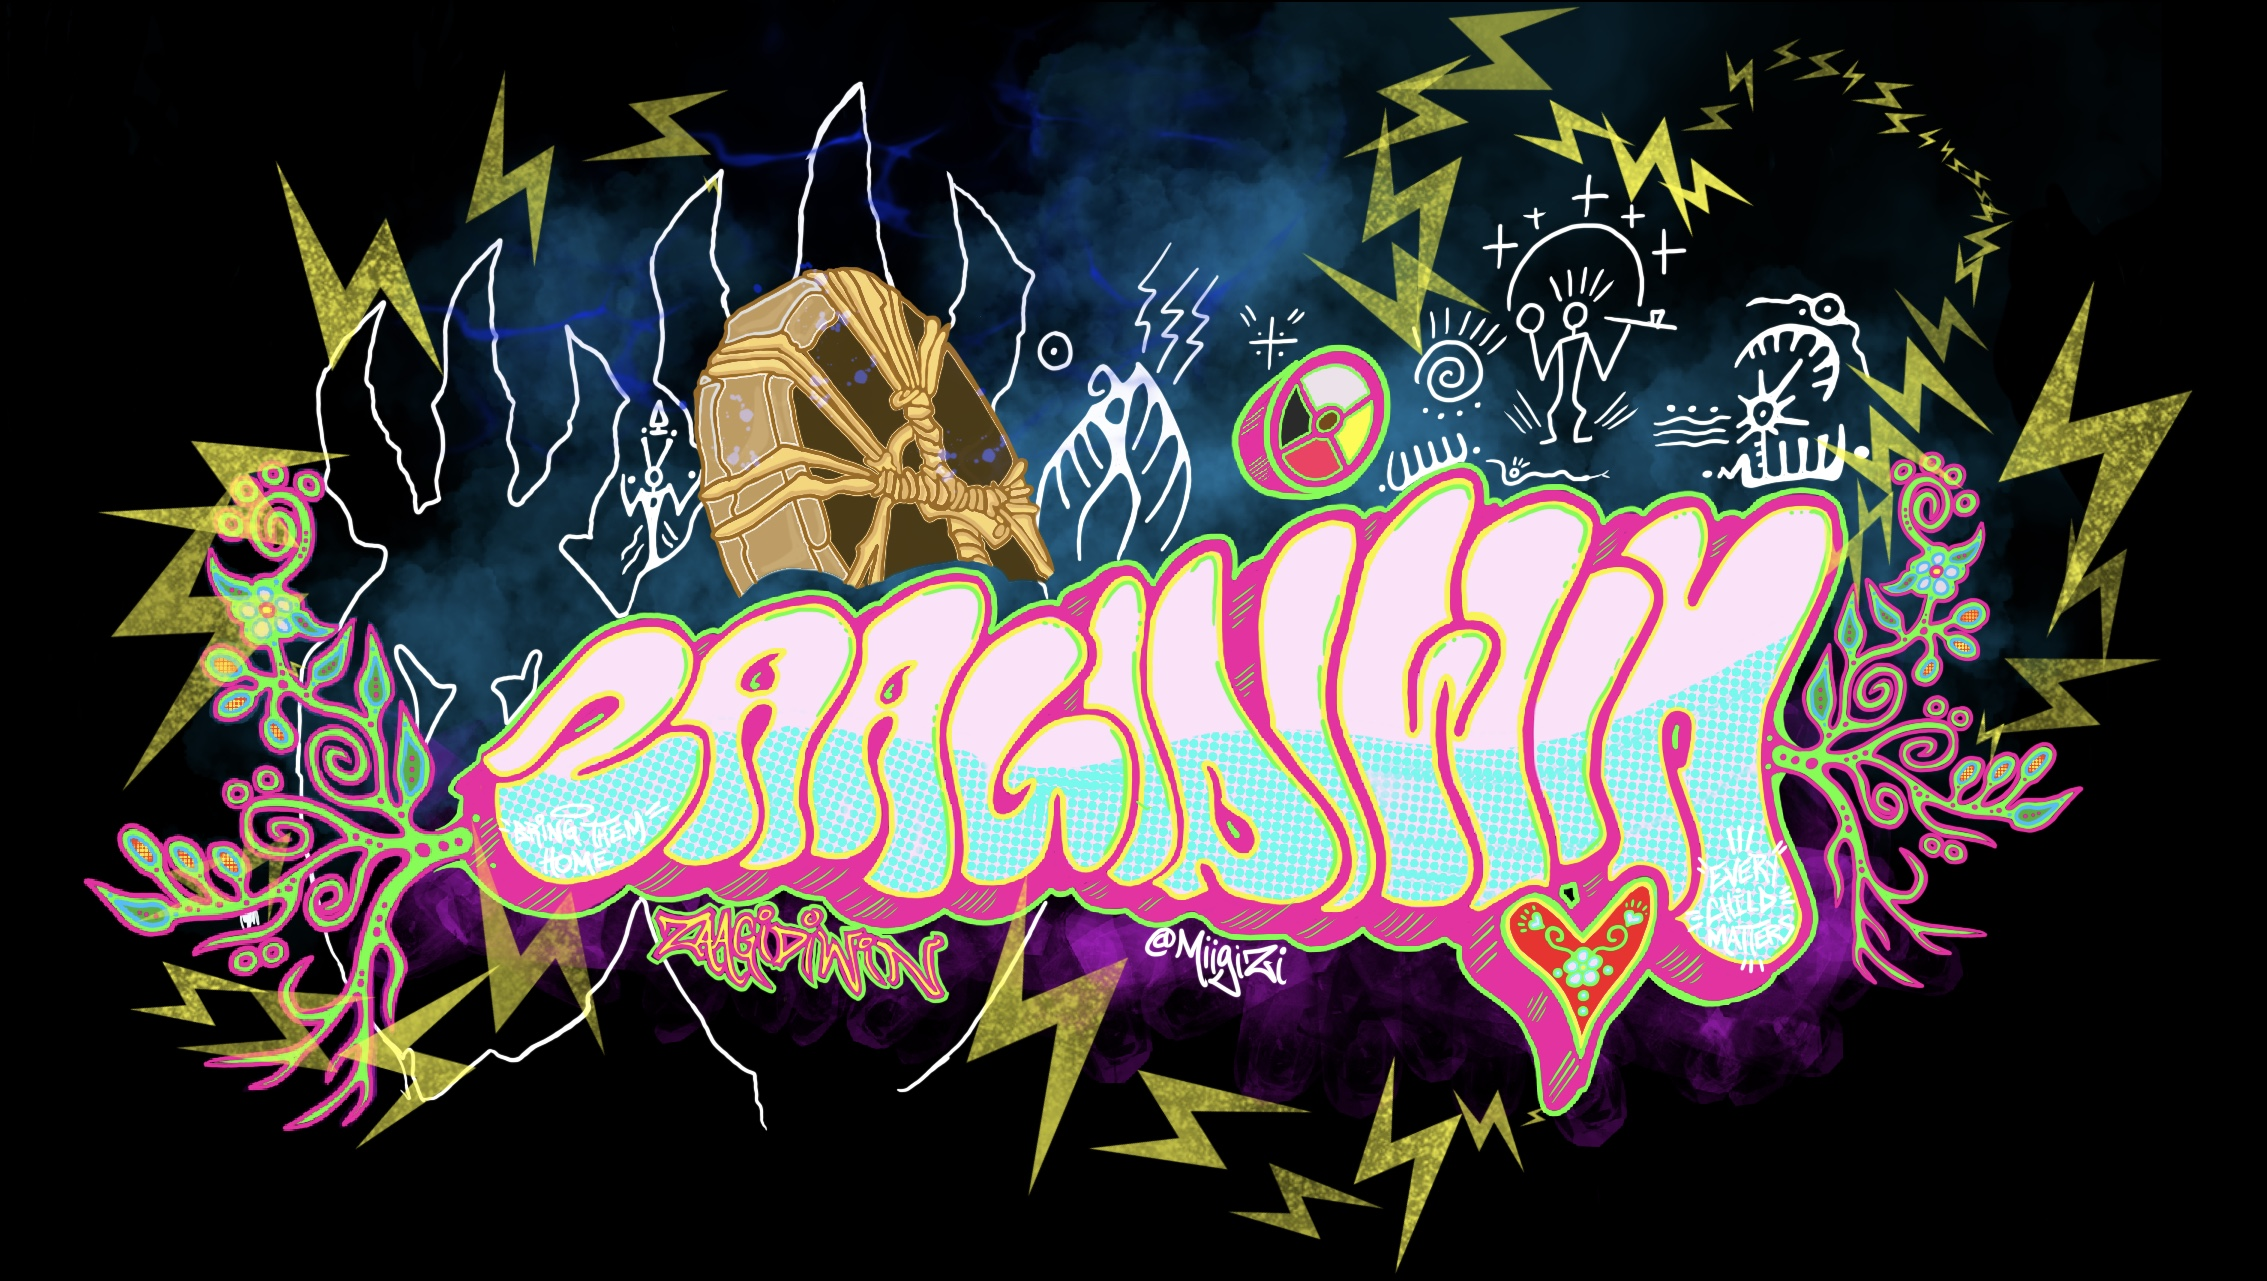 Banner image for Zaagidiwin. Black background with graffiti-style text that says Zaagidiwin. The text is surrounded by indigenous symbols.